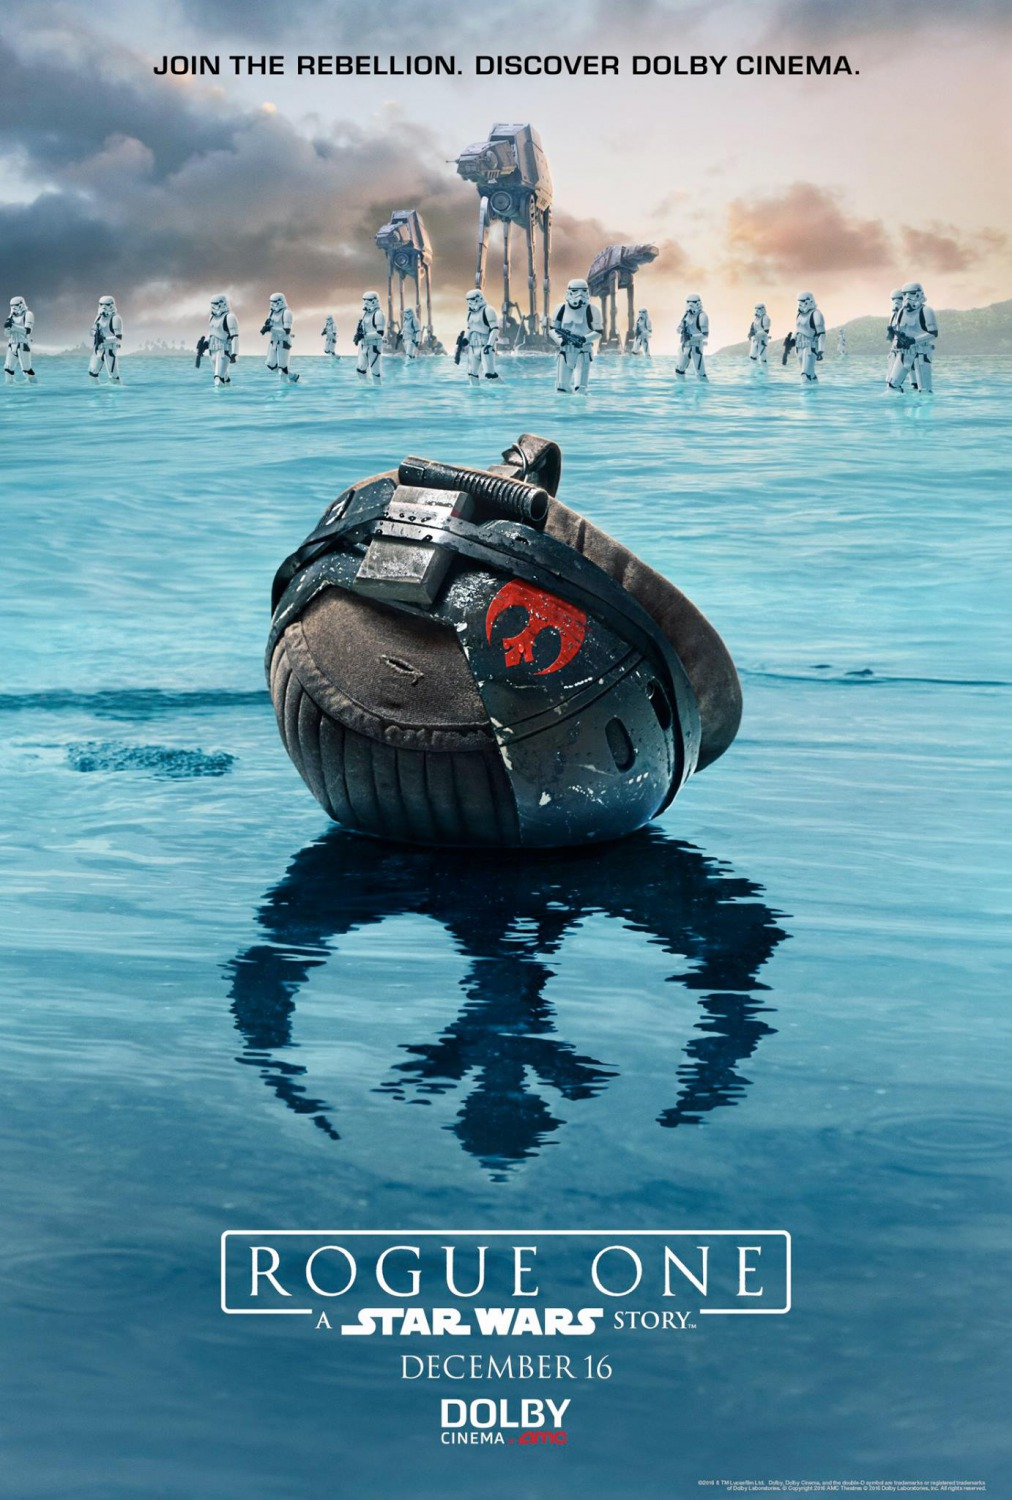 The Blot Says Star Wars Rogue One Amc Dolby Cinema